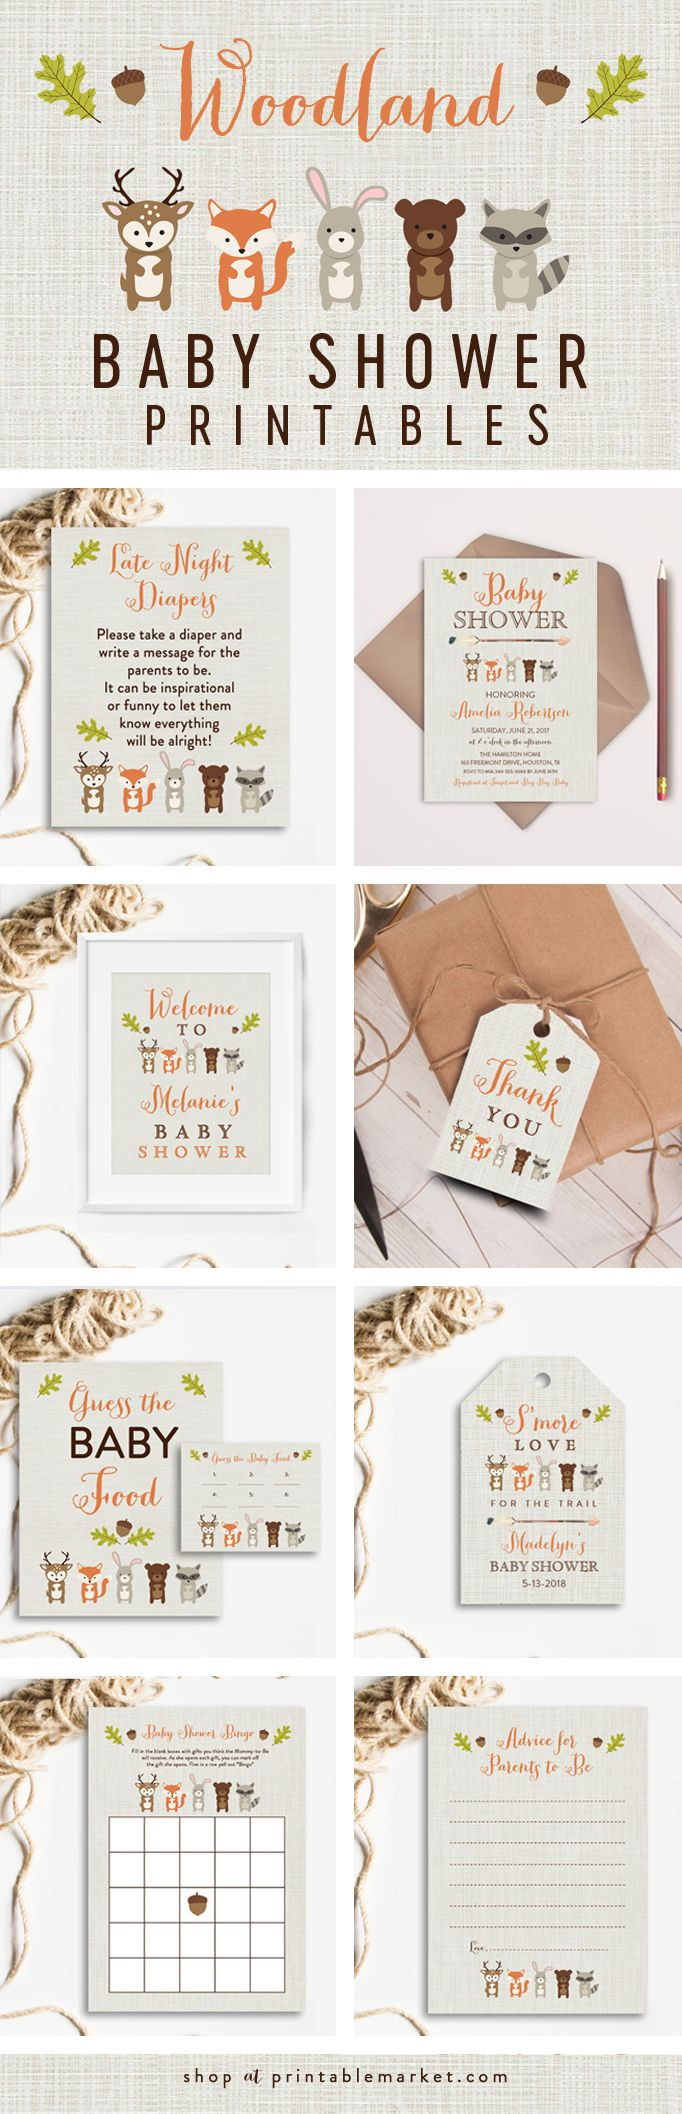 Look at all of these cute Woodland Baby Shower theme ideas!